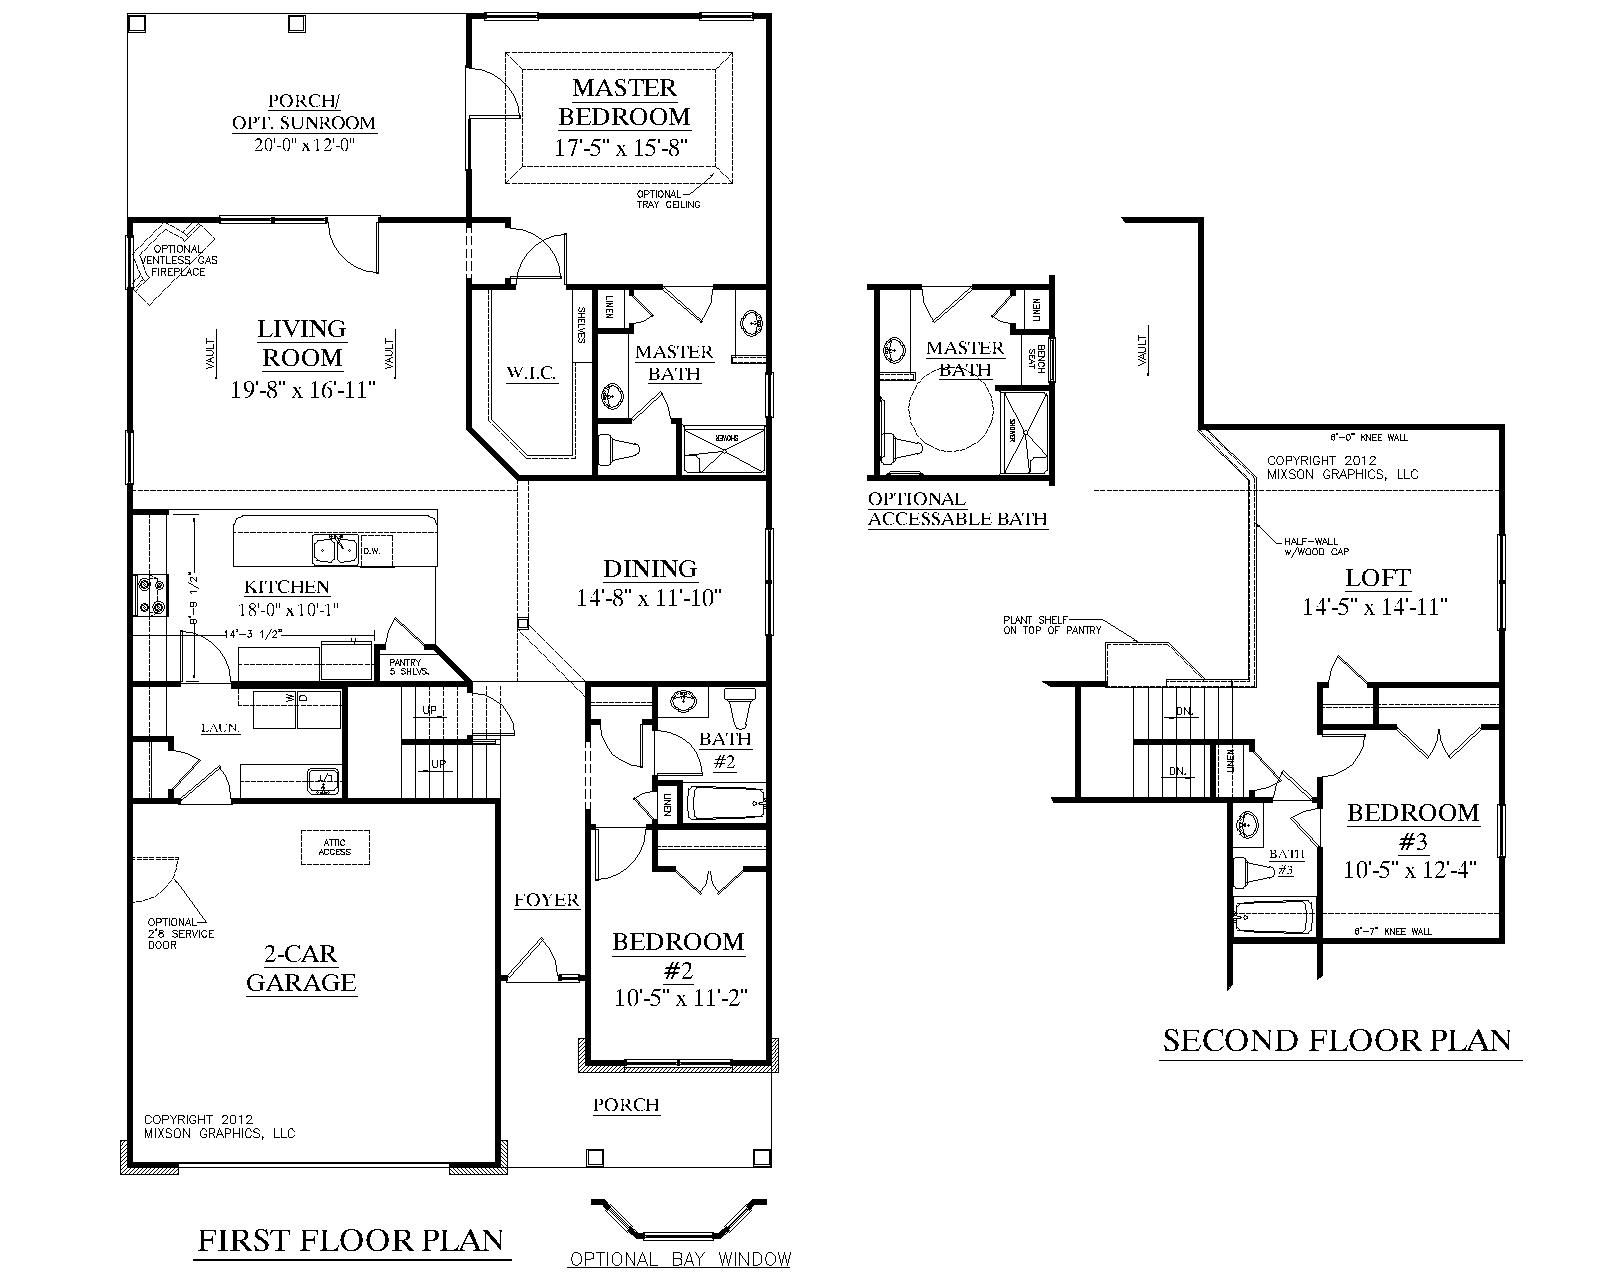 House plan 2224 kingstree floor plan traditional 1 1 2 for 3 bedroom one level house plans